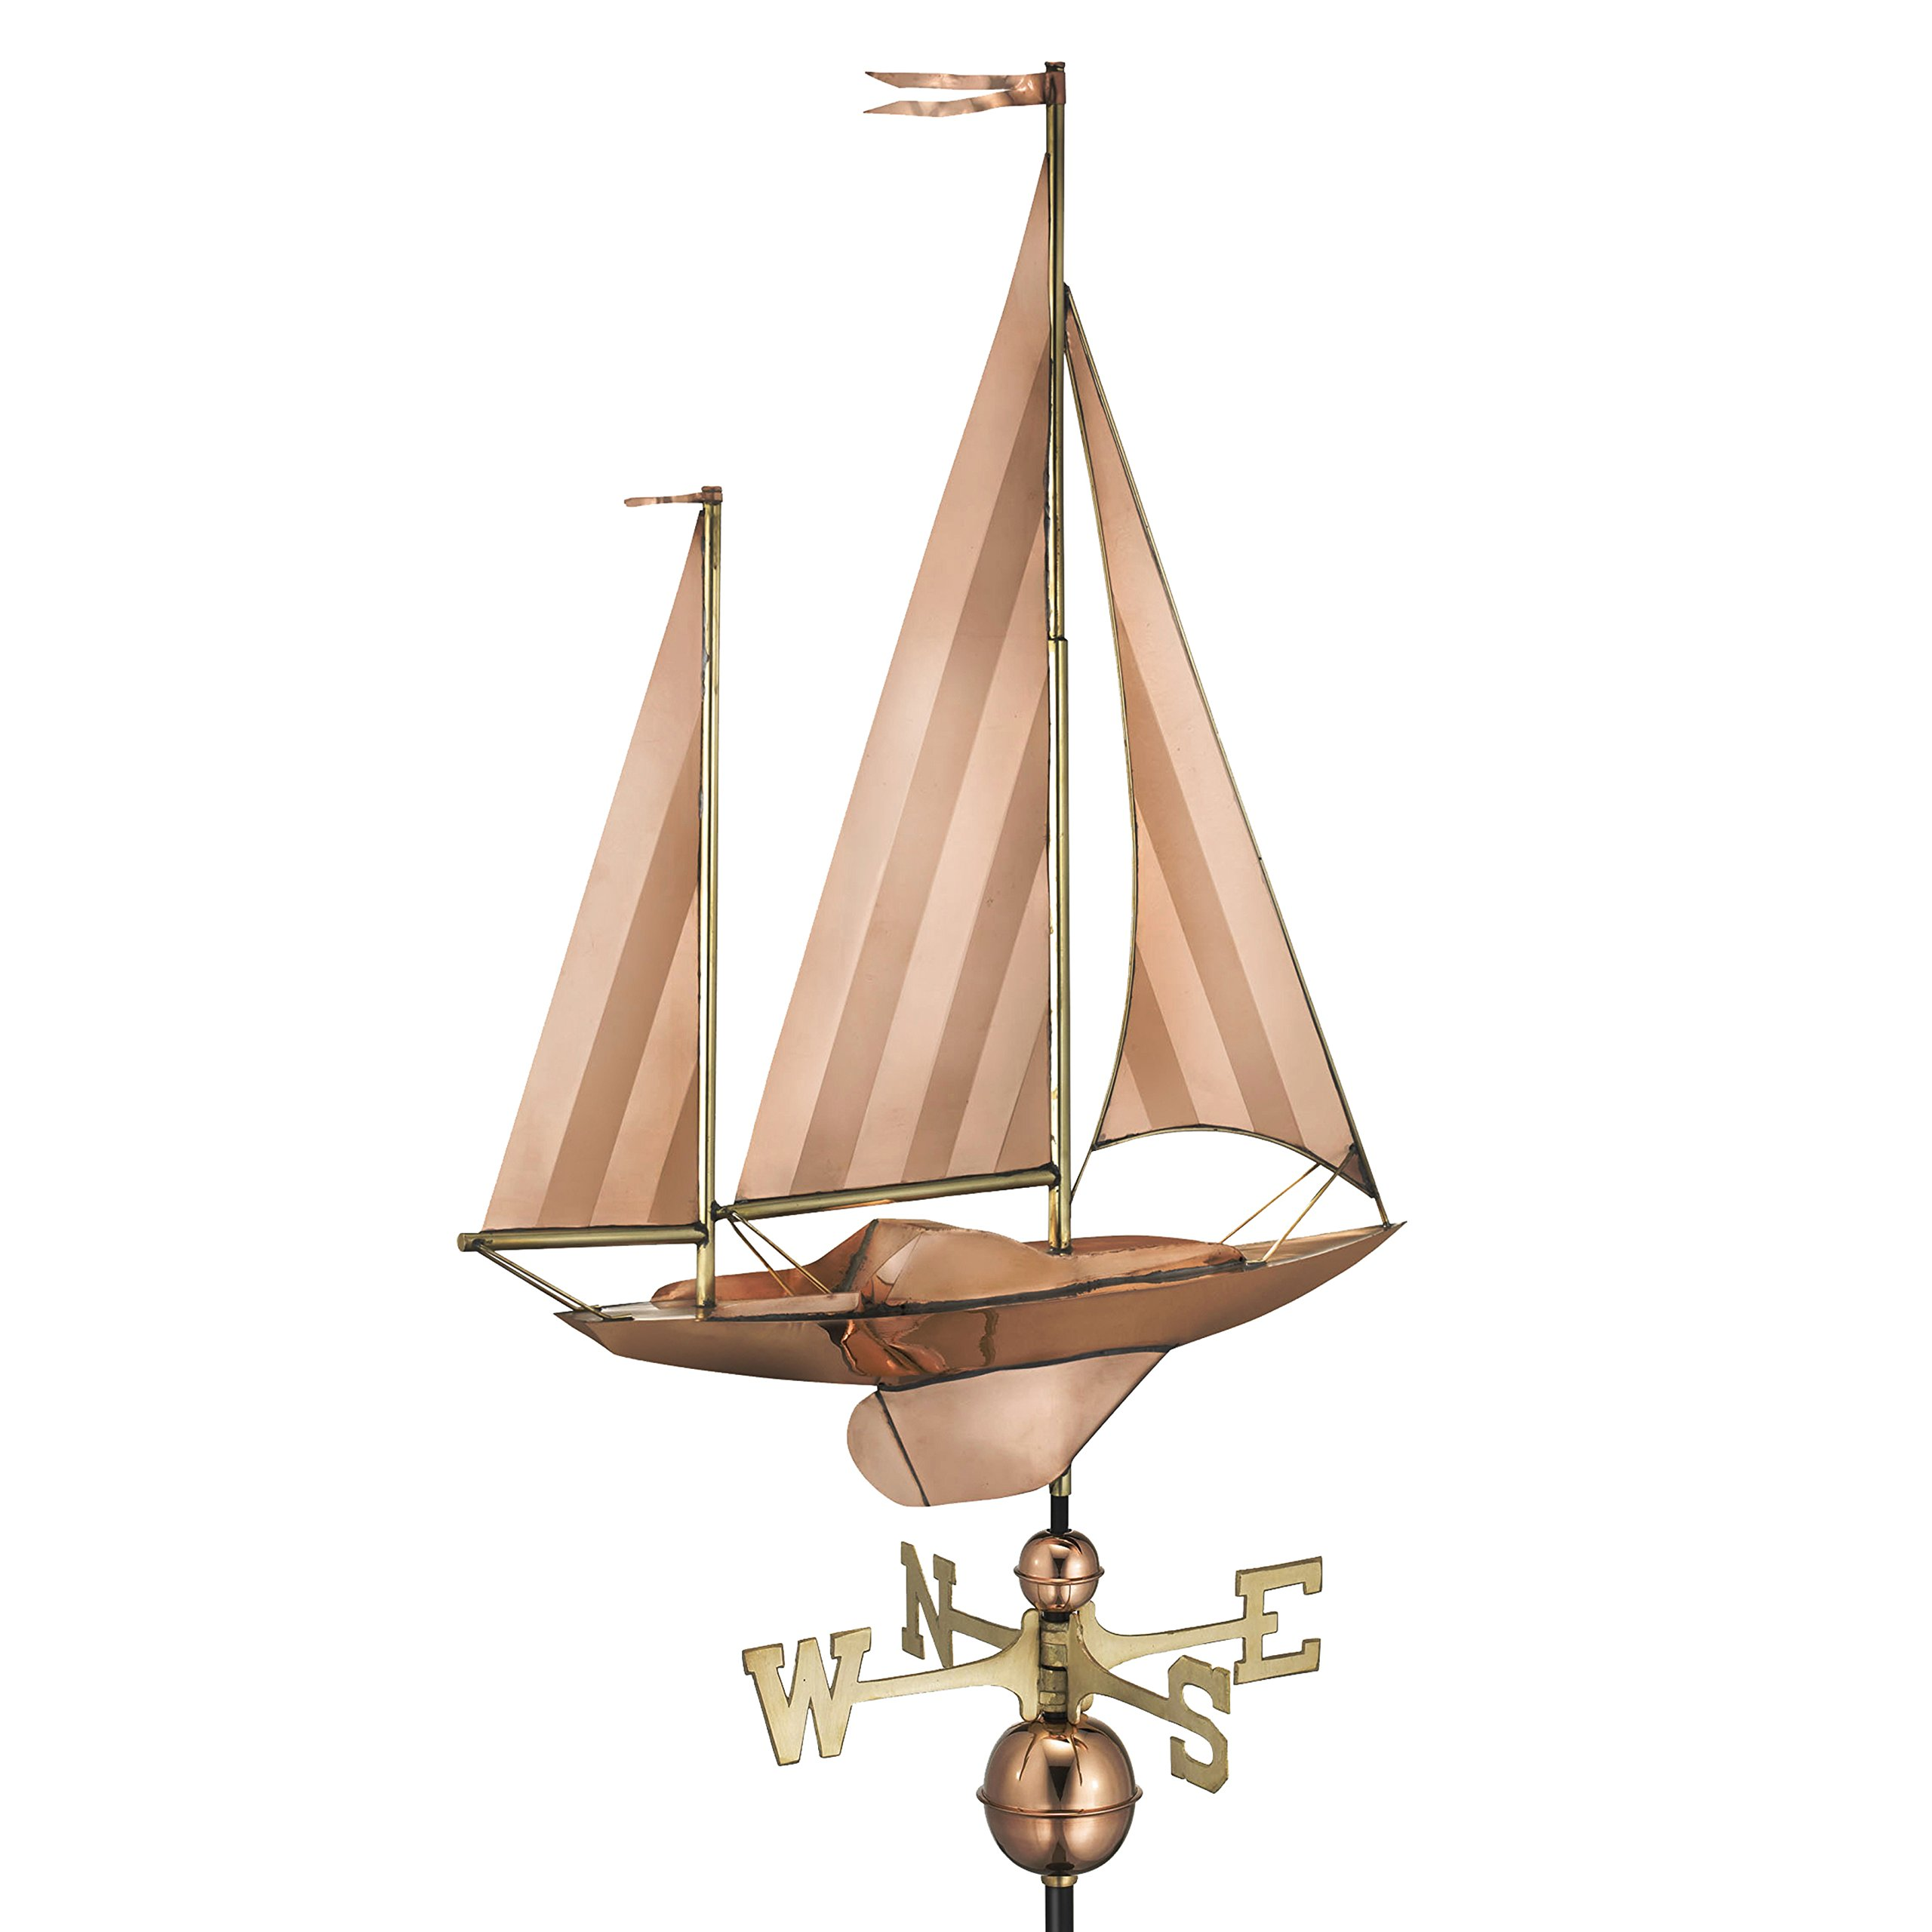 Good Directions Large Sailboat Weathervane, Pure Copper